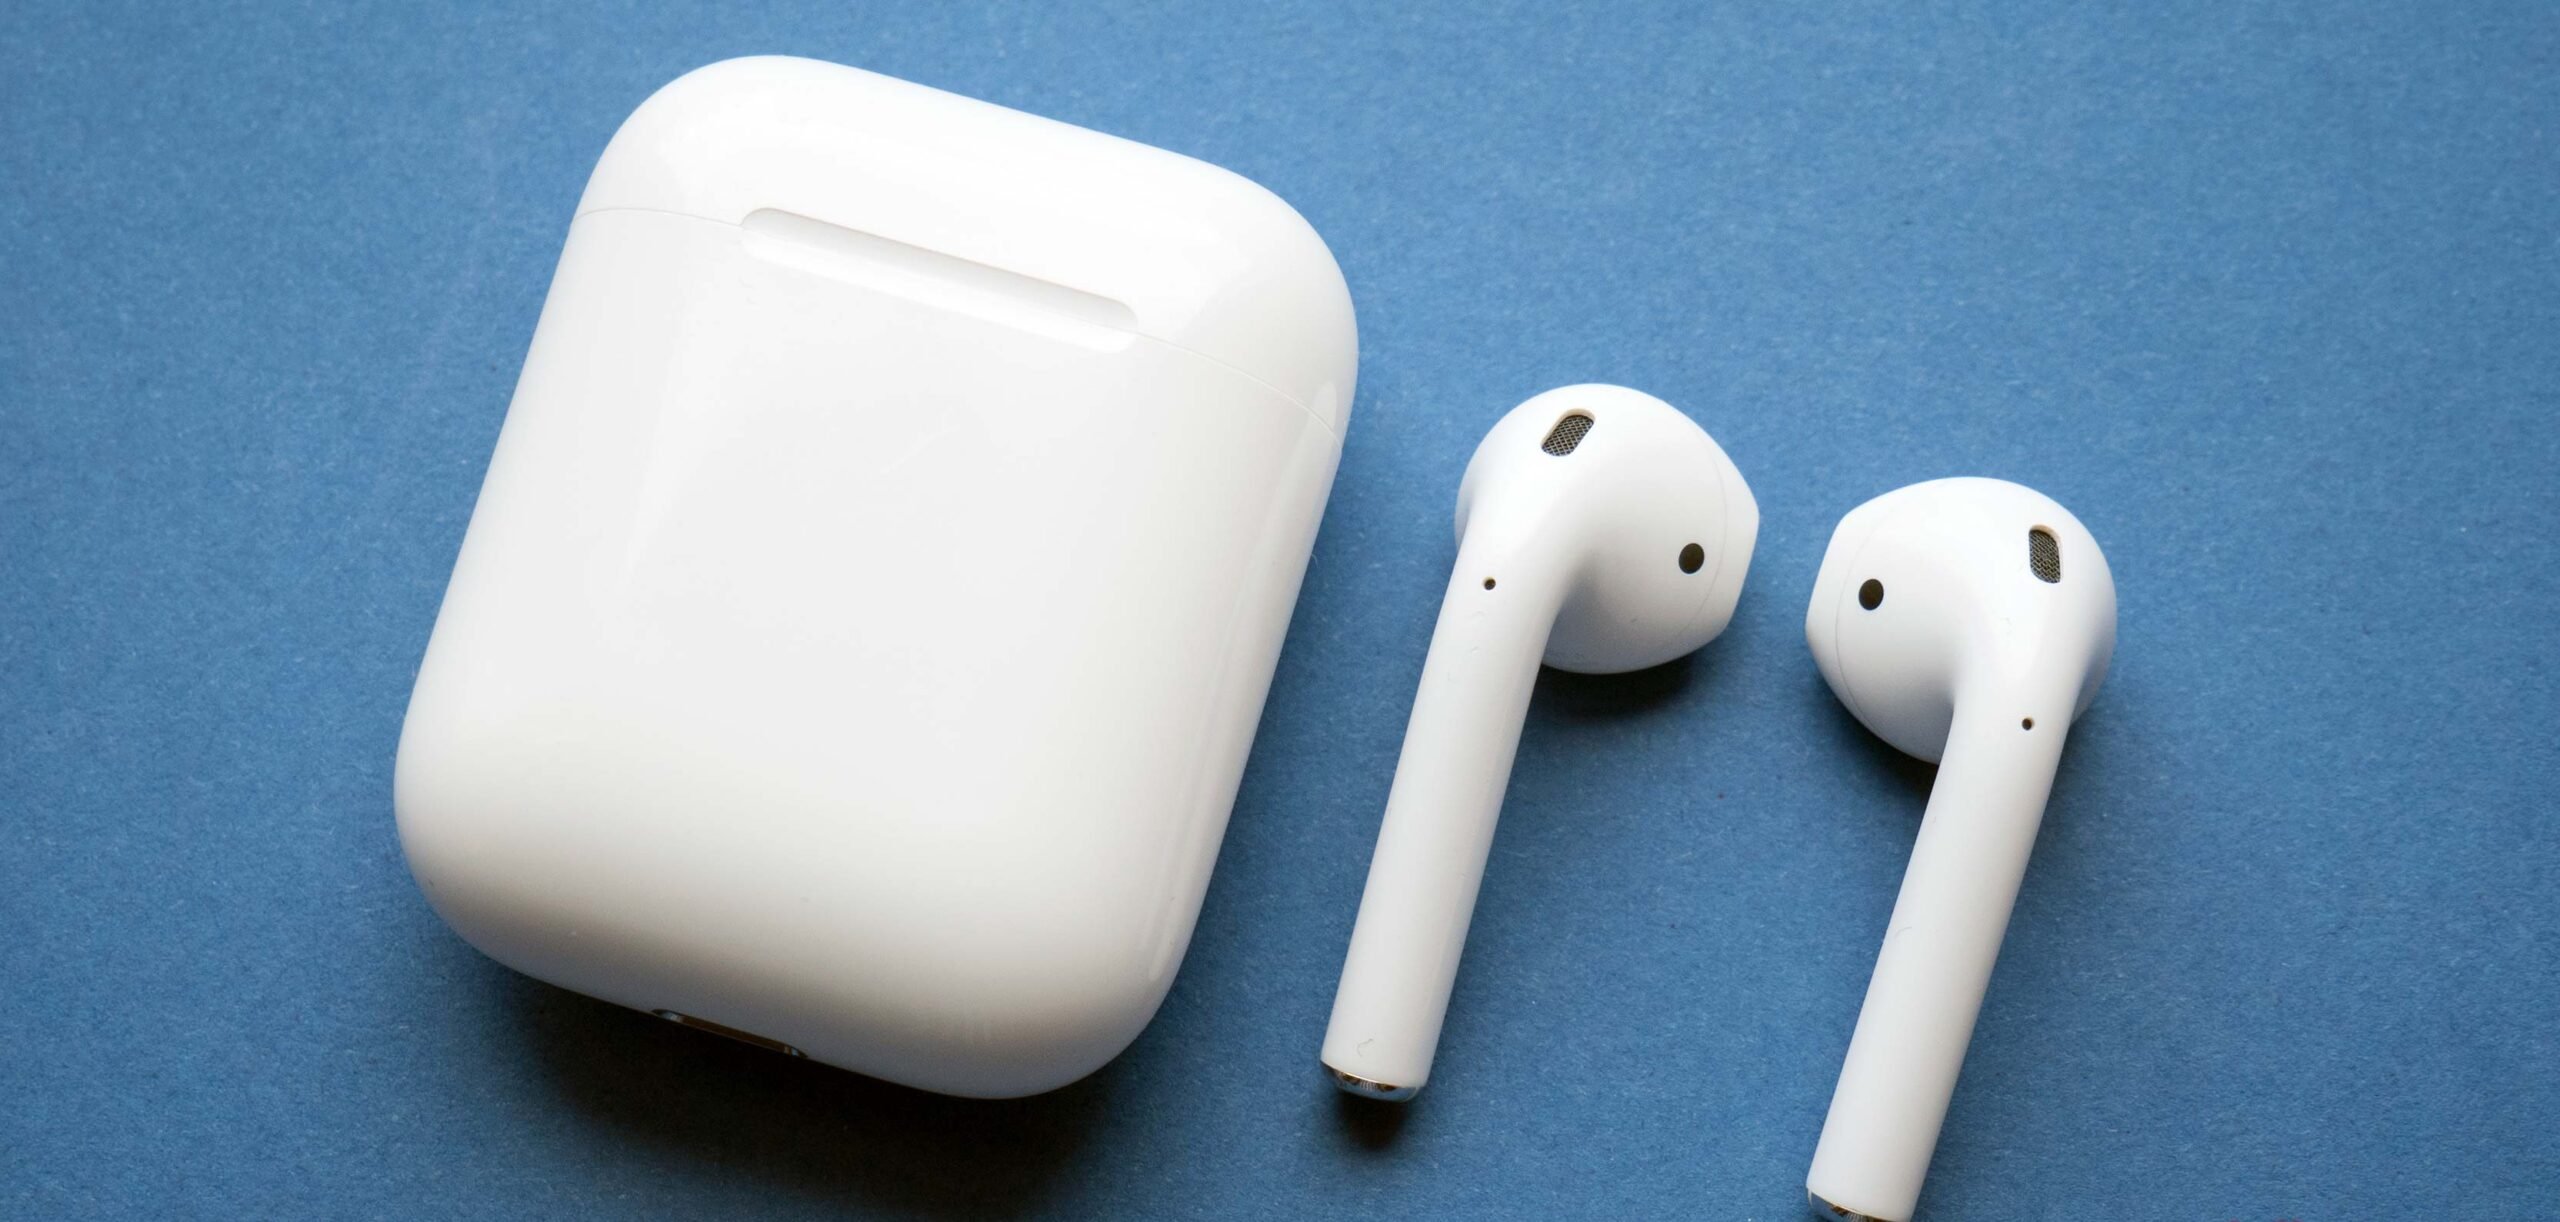 Amazon Is Planning A Very Special Feature For Its AirPods Competitors